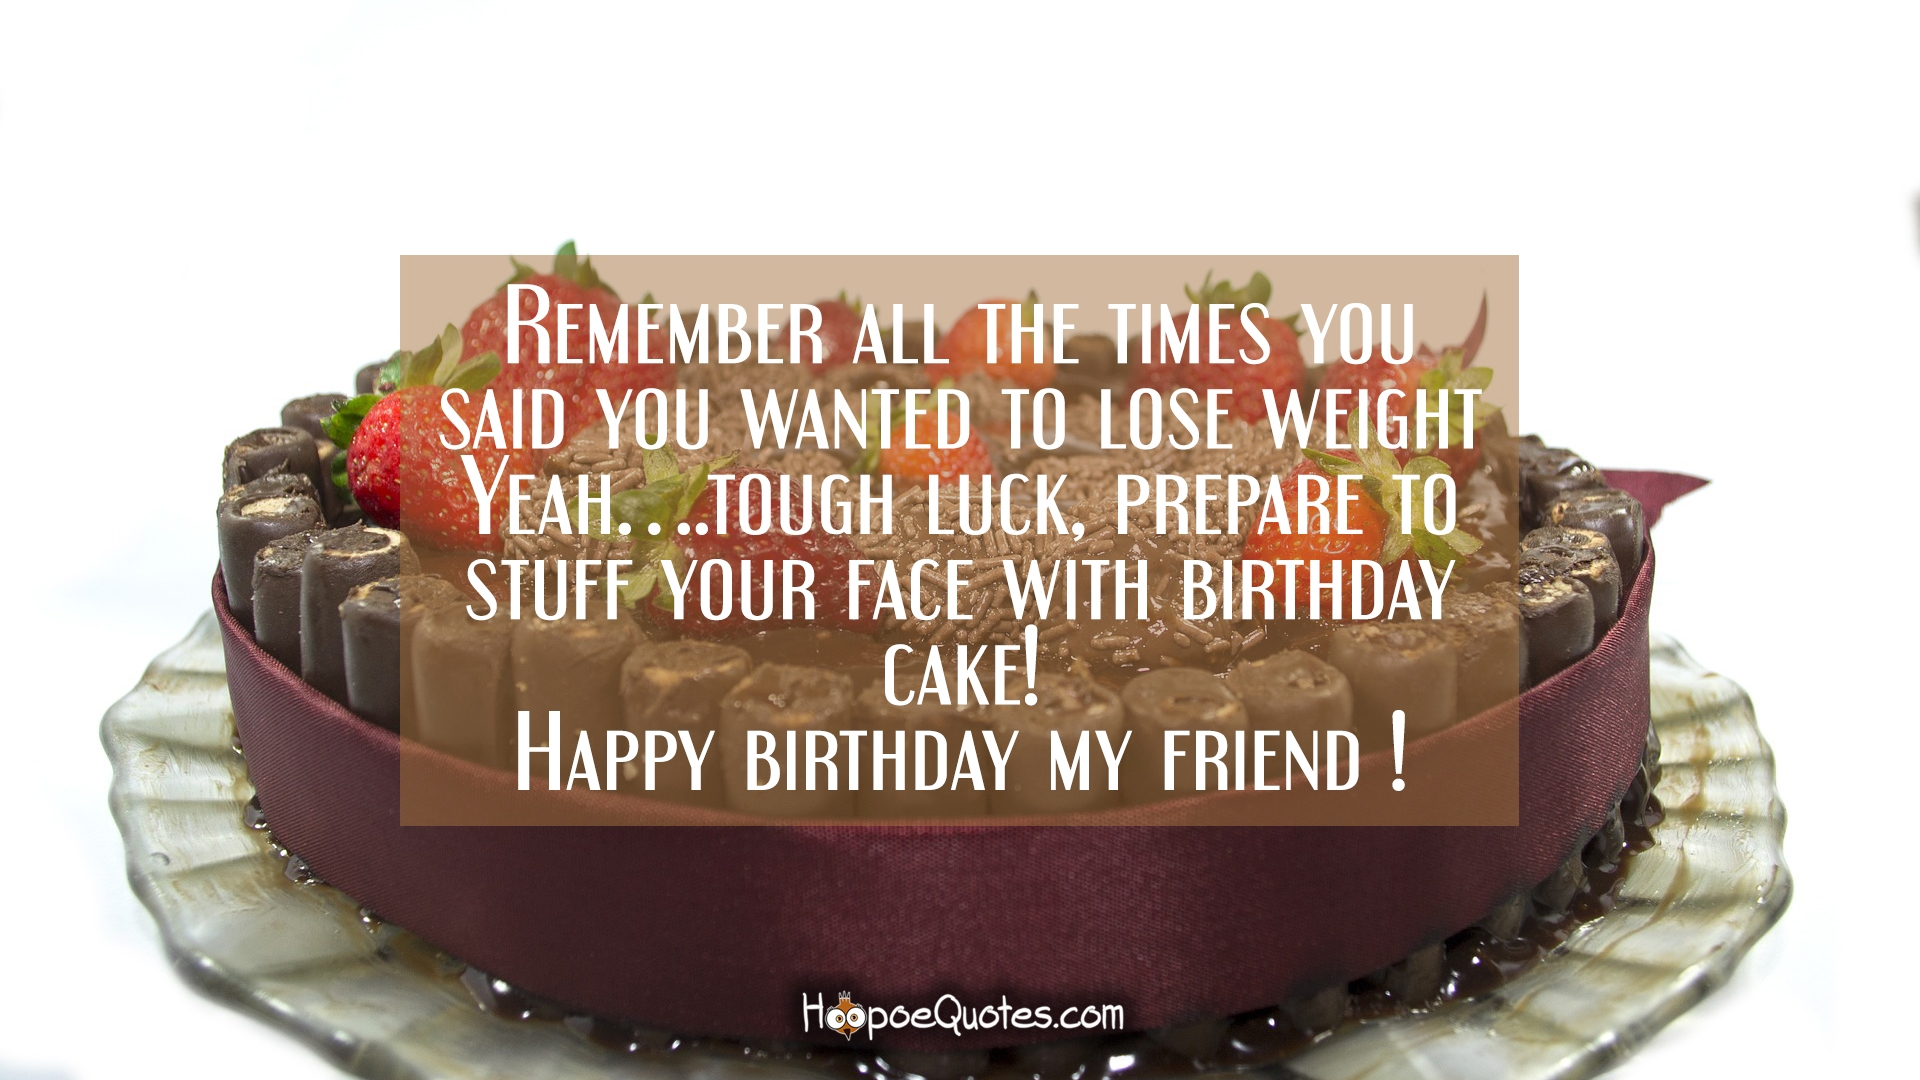 Funny Birthday Wishes Remember All The Times You Said Wanted To Lose Weight Yeah Tough Luck